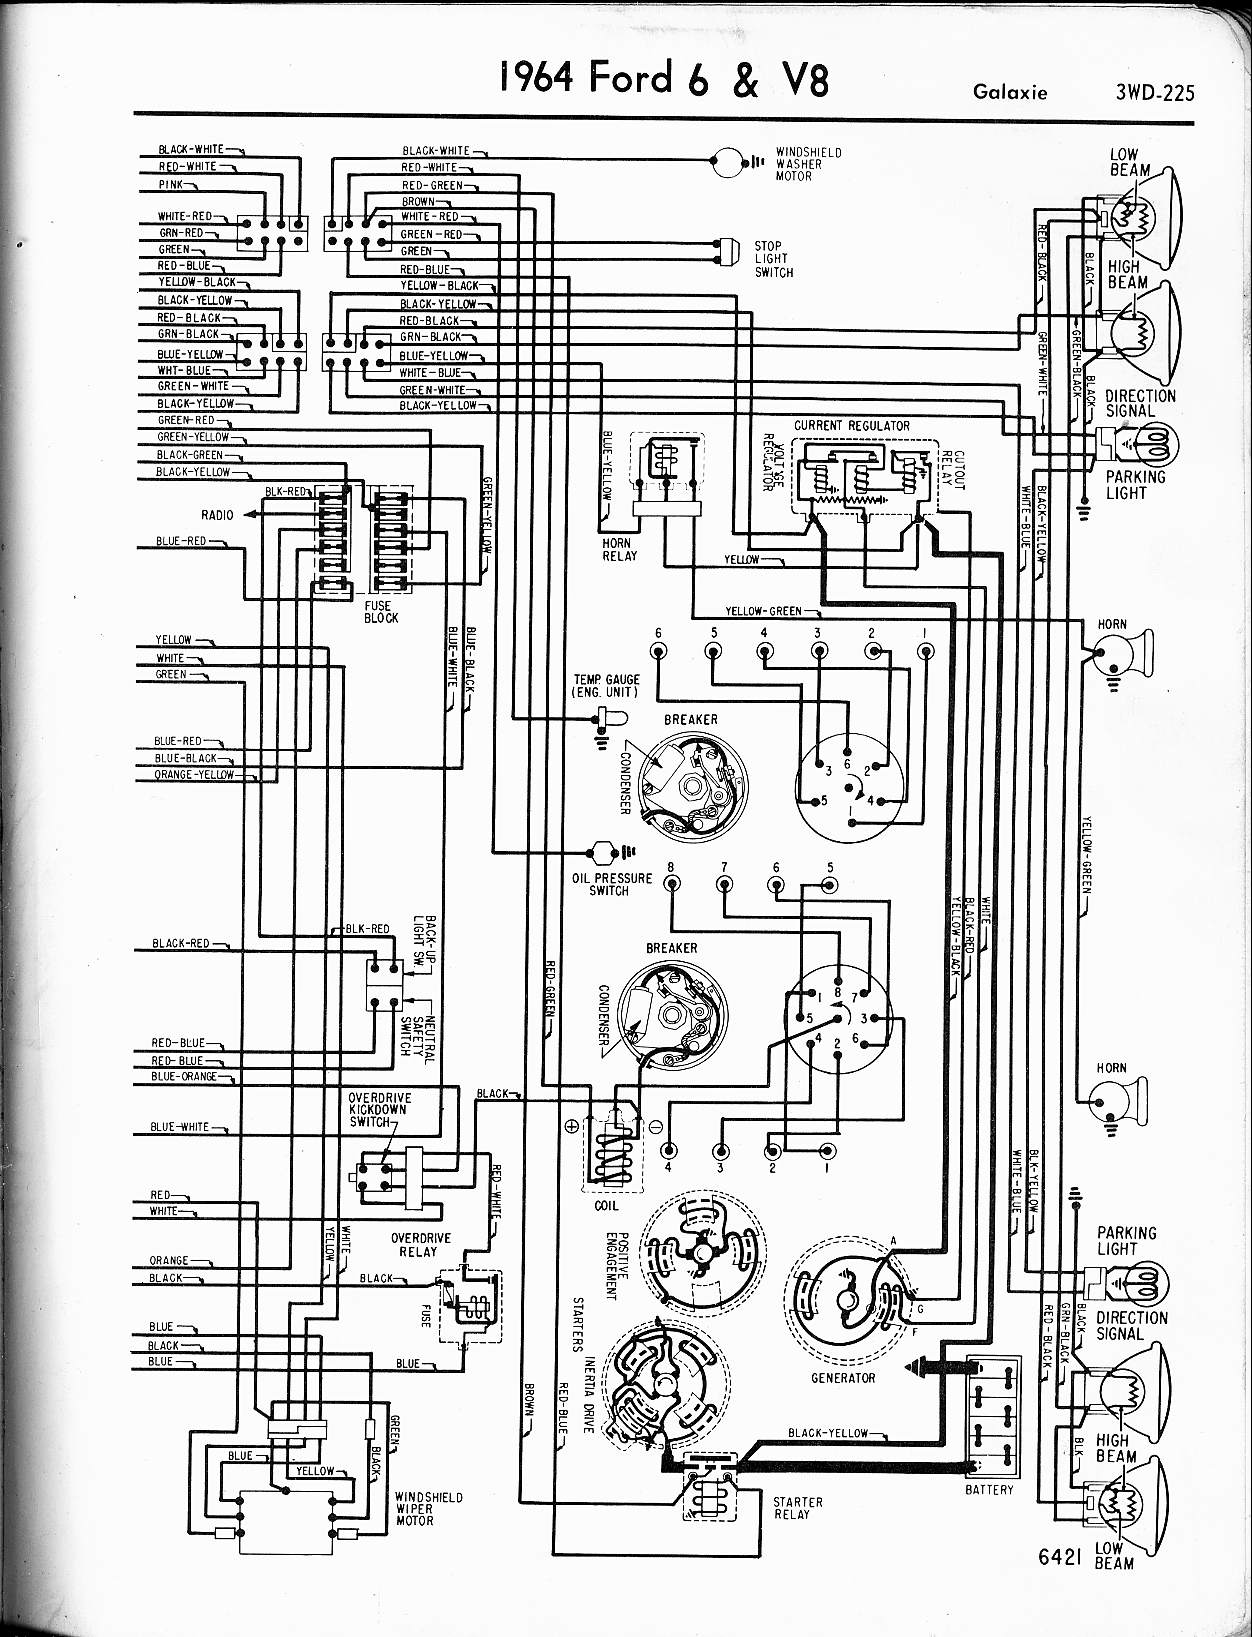 1965 Mustang Wiring Diagrams as well 2003 Chevy Ssr Wiring Diagram moreover Seat Leon Wiring Diagram furthermore 131727 Oil Pressure Sending Unit Location as well Schematics wiring. on 2004 chevy impala power window wiring diagram